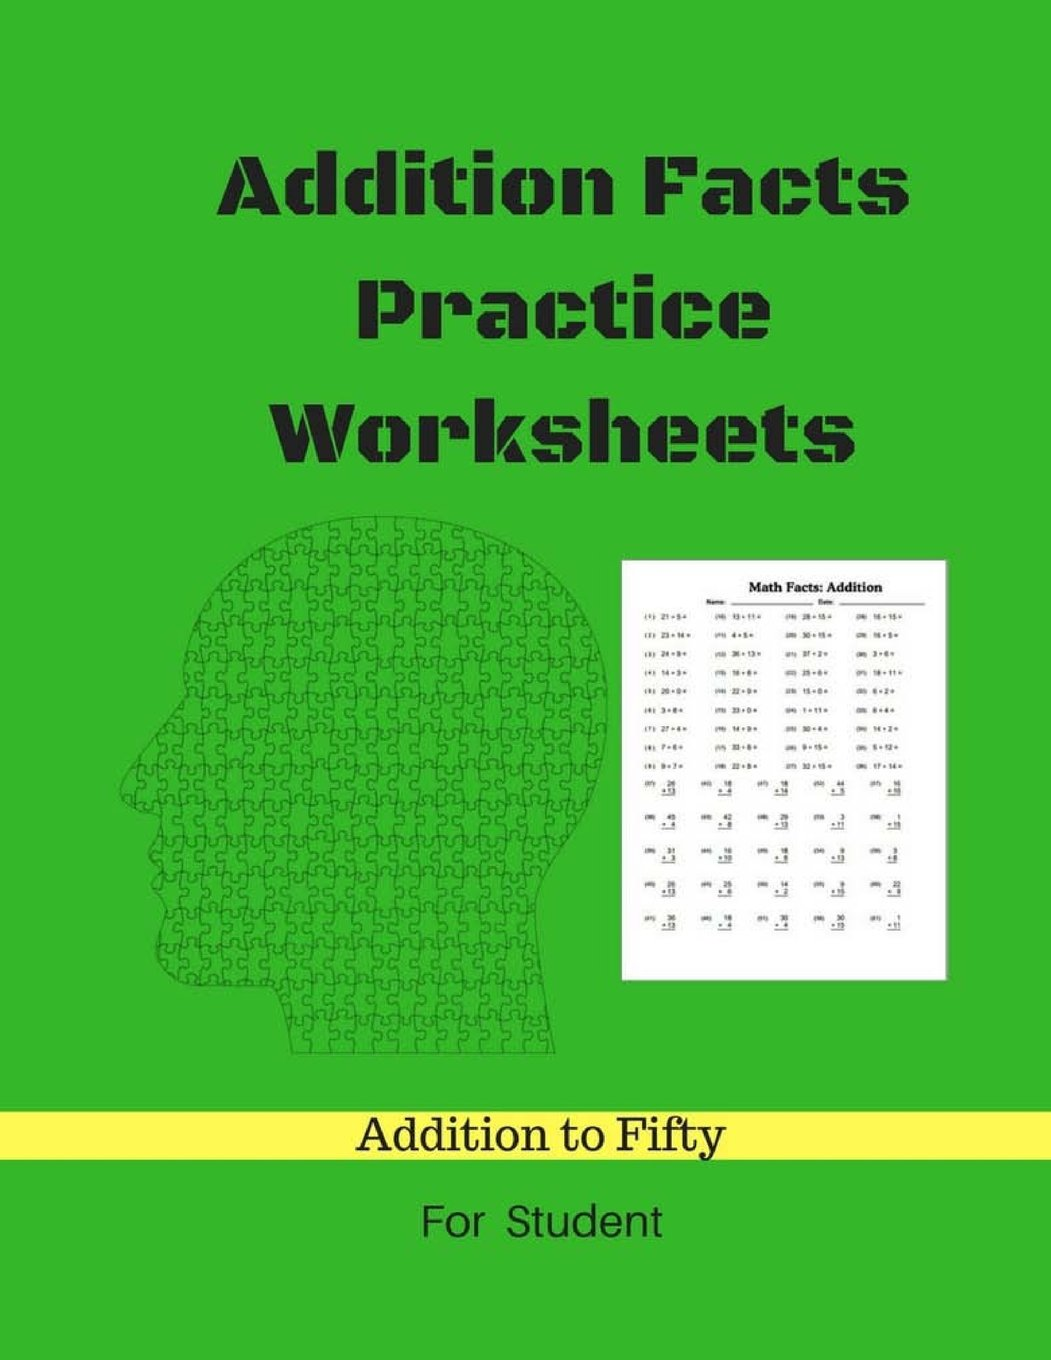 addition facts practice worksheets addition math to fifty addition  addition facts practice worksheets addition math to fifty addition  worksheets arithmetic workbook with answers paperback  march